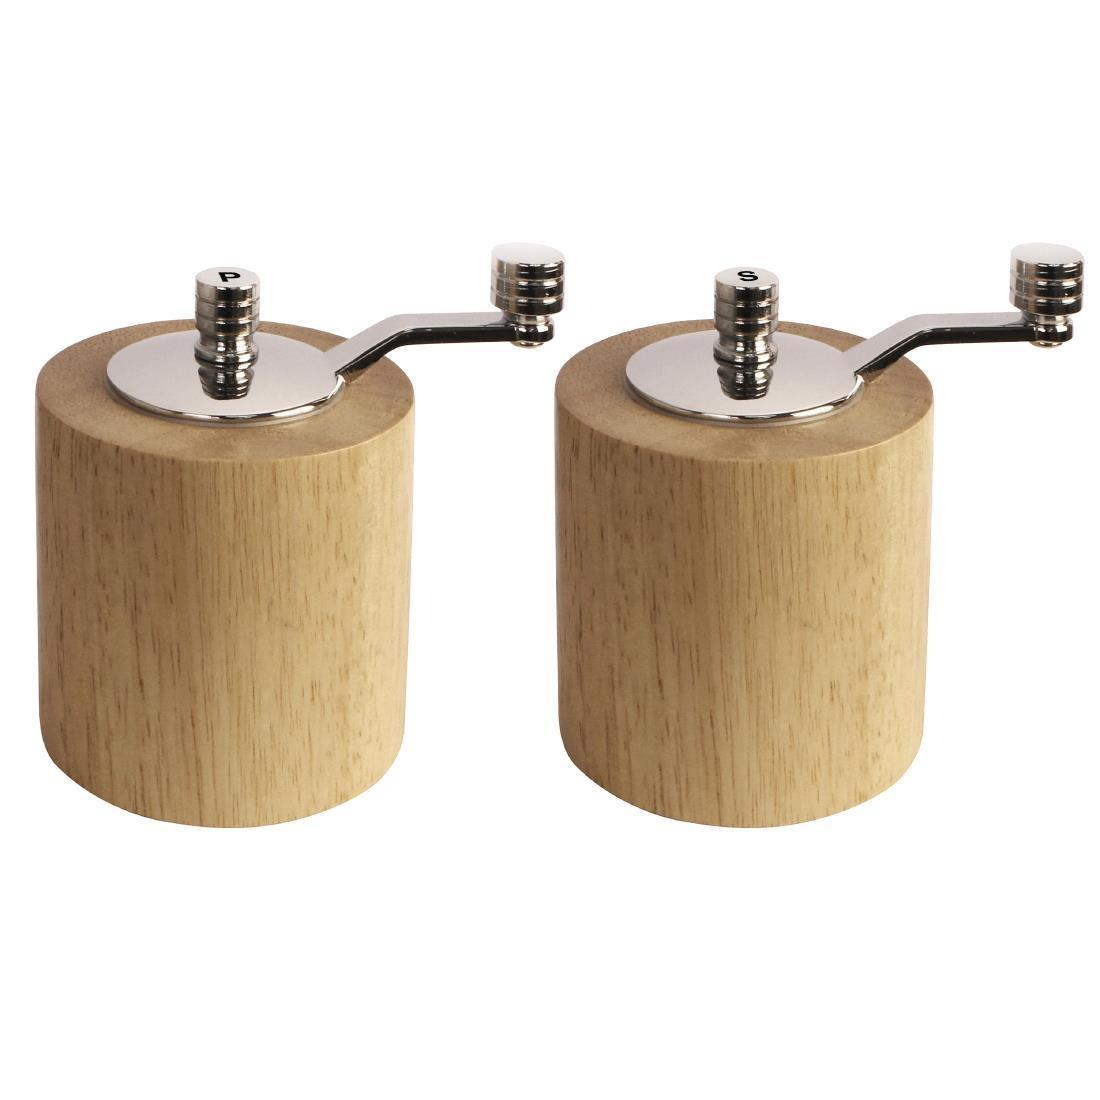 Light Wood Salt and Pepper Mill Grinder Set